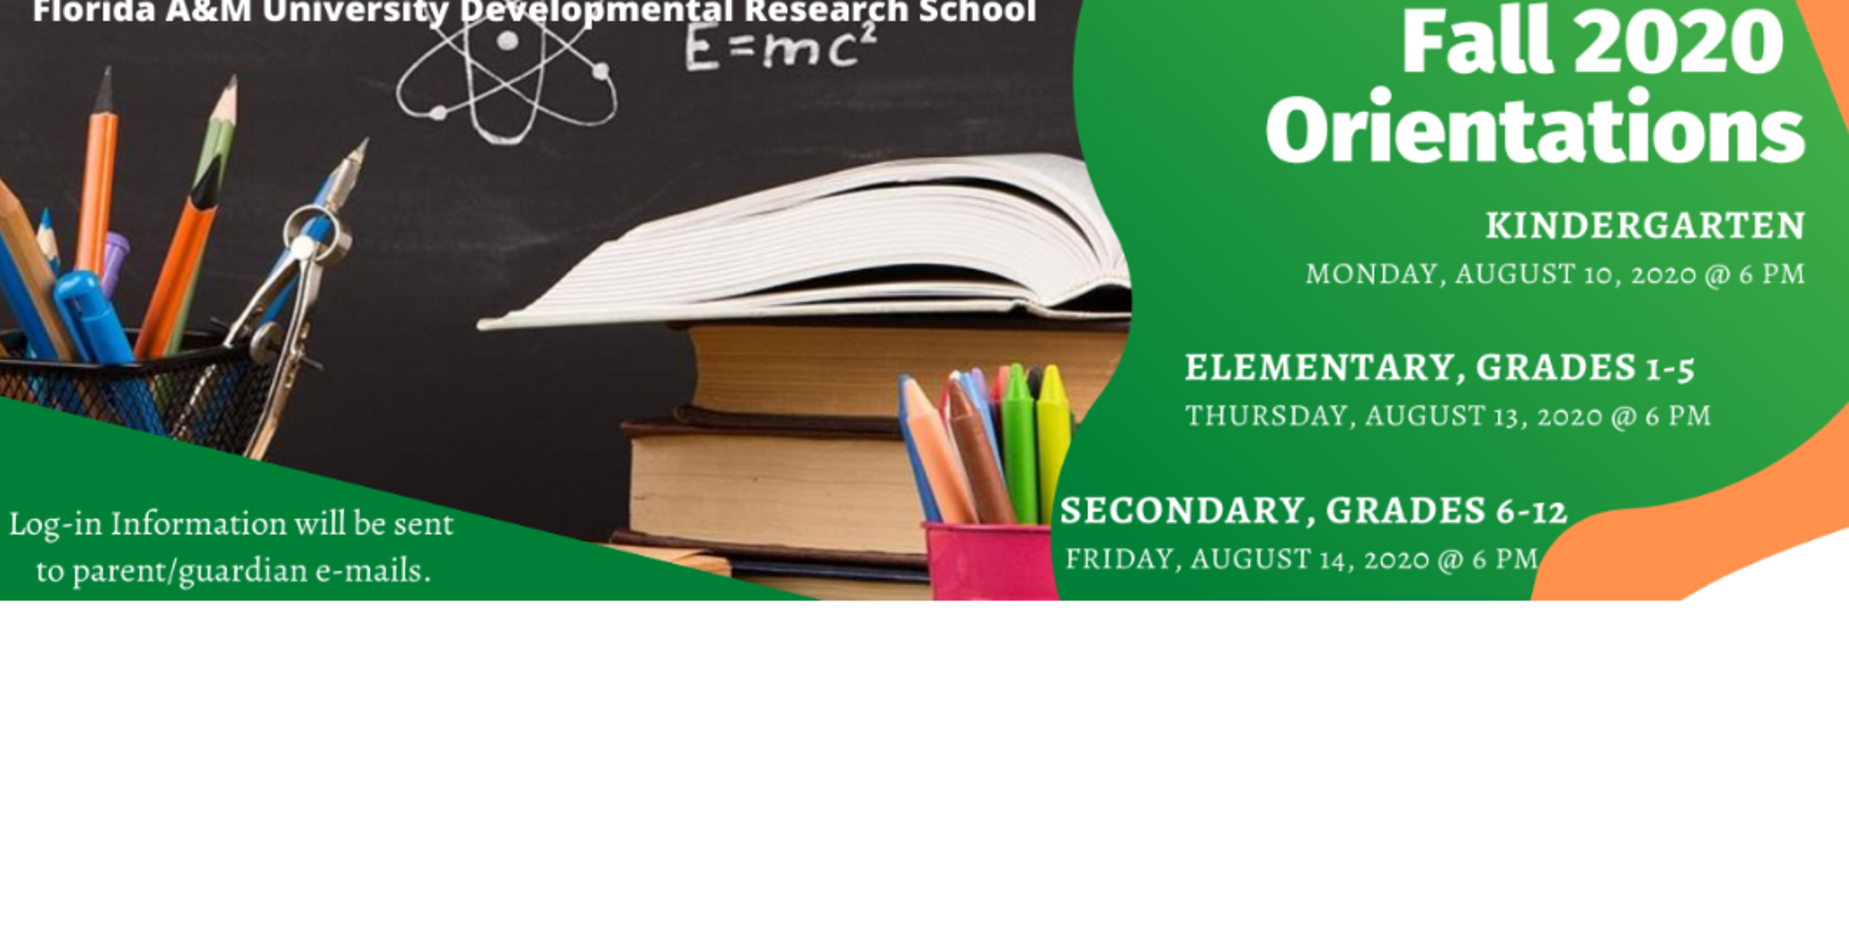 Fall 2020 Orientations Kindergarten Monday, August 10 at 6 pm Elementary Grades 1-5 Thursday, August 13 at 6 pm Secondary Grades 6-12 on Friday, August 14 at 6 pm